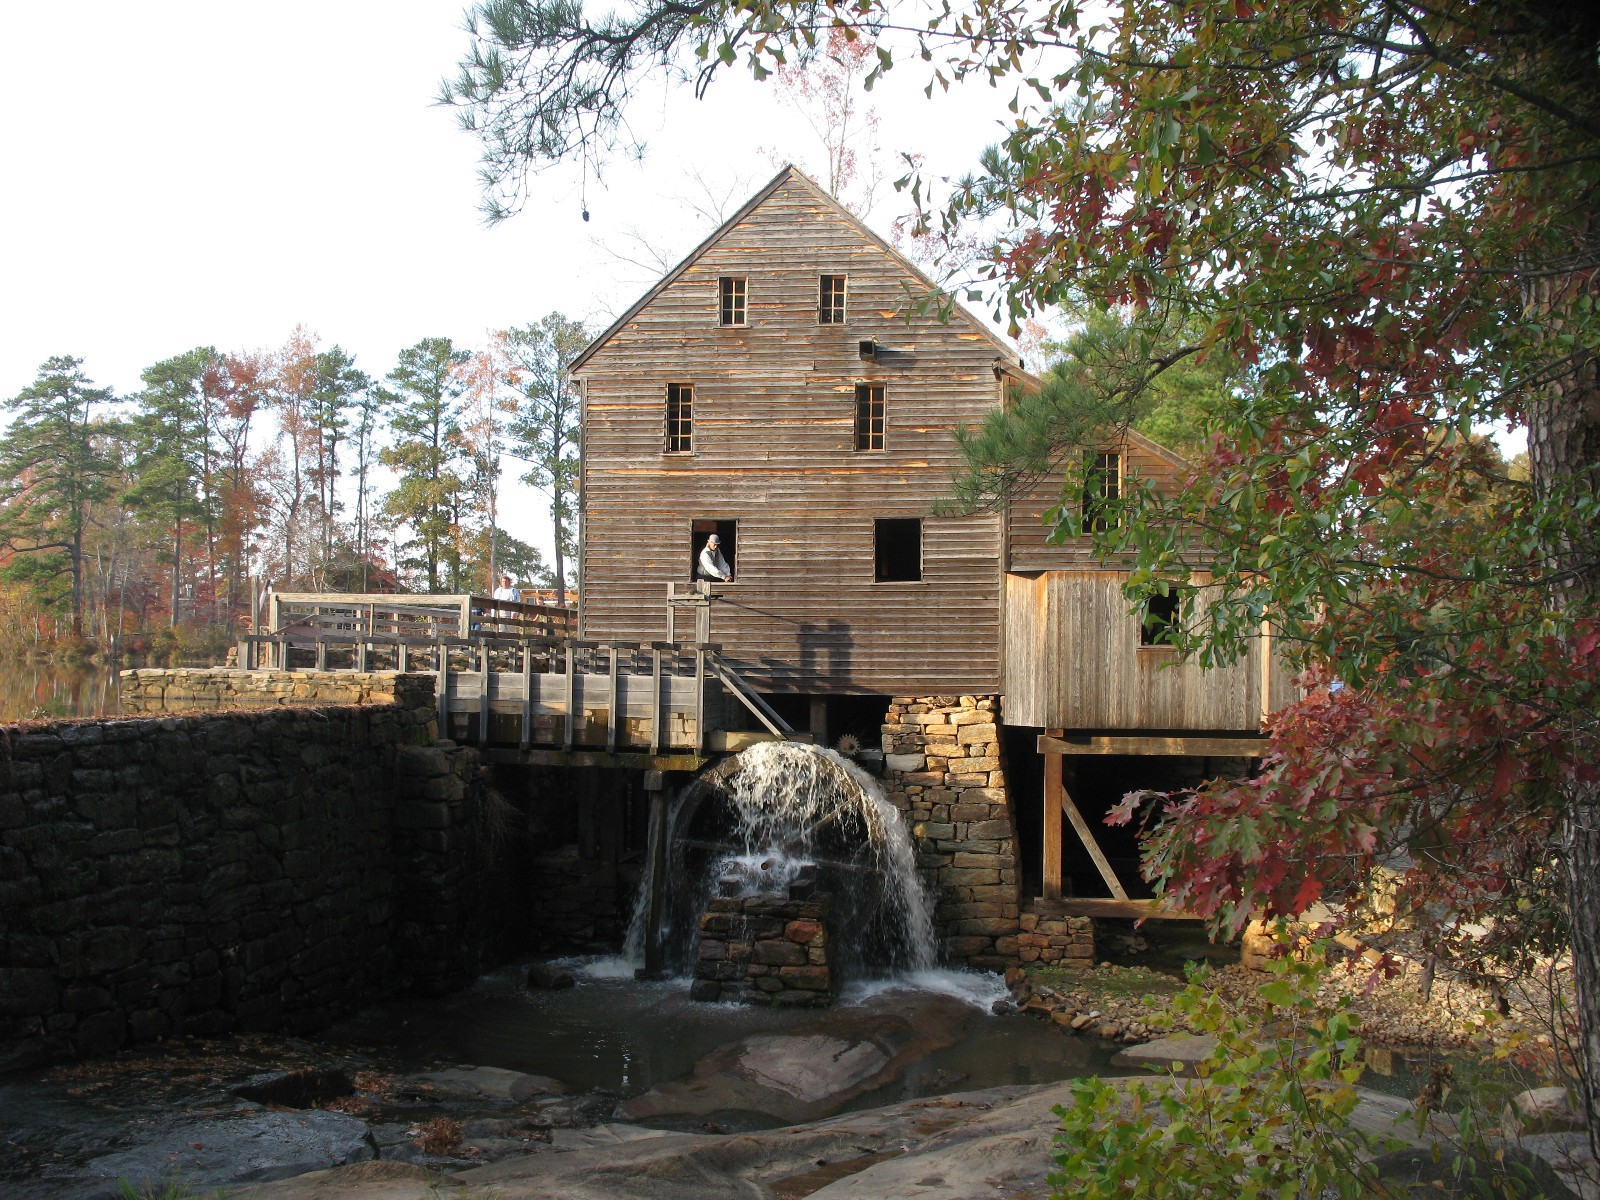 Some photos of Yates Mill Pond Raleigh Franklin activities